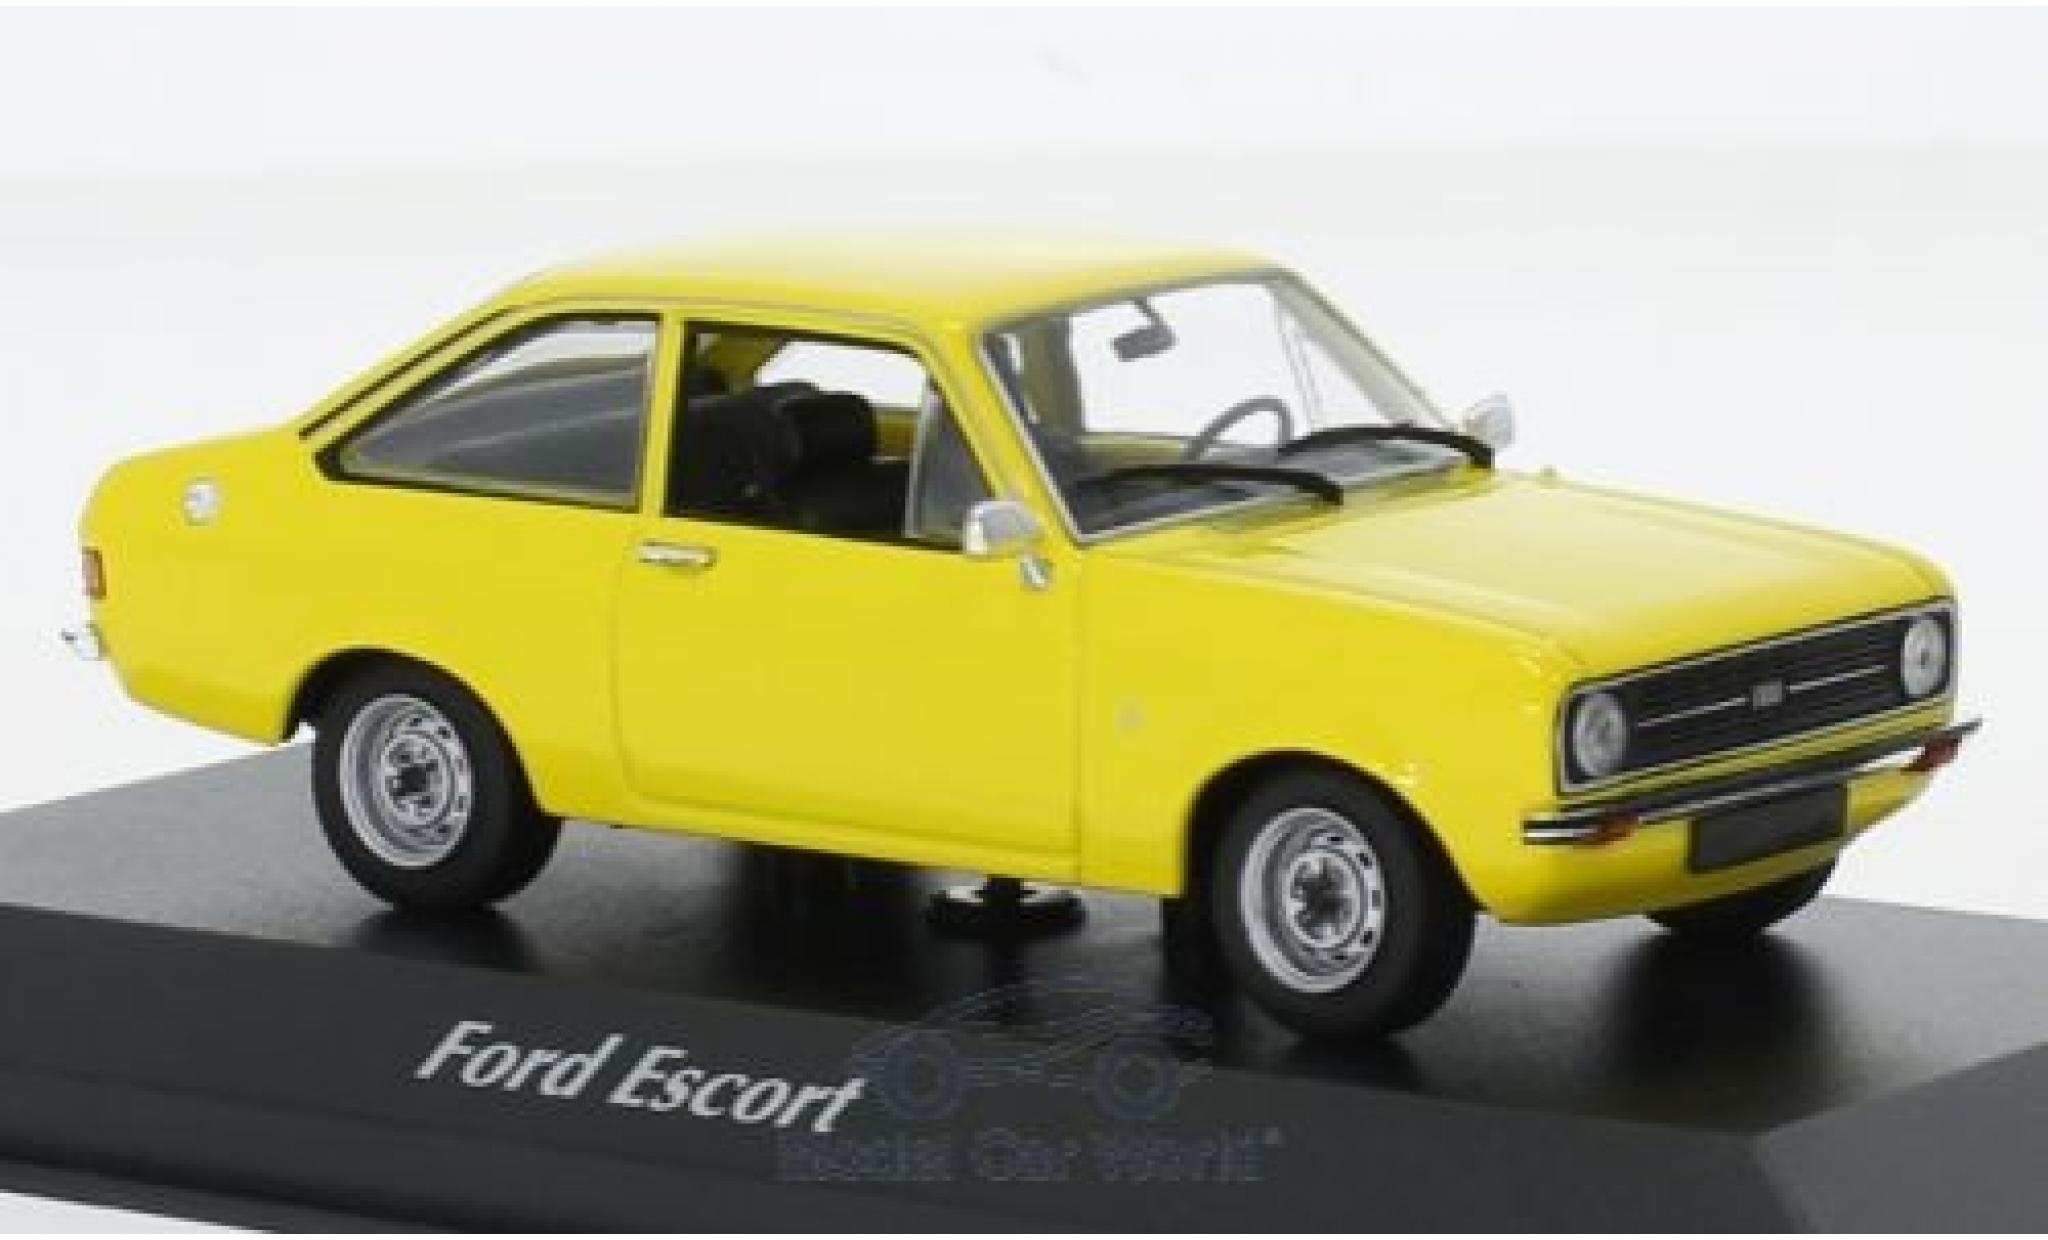 Ford Escort 1/43 Maxichamps 1.3 jaune 1975